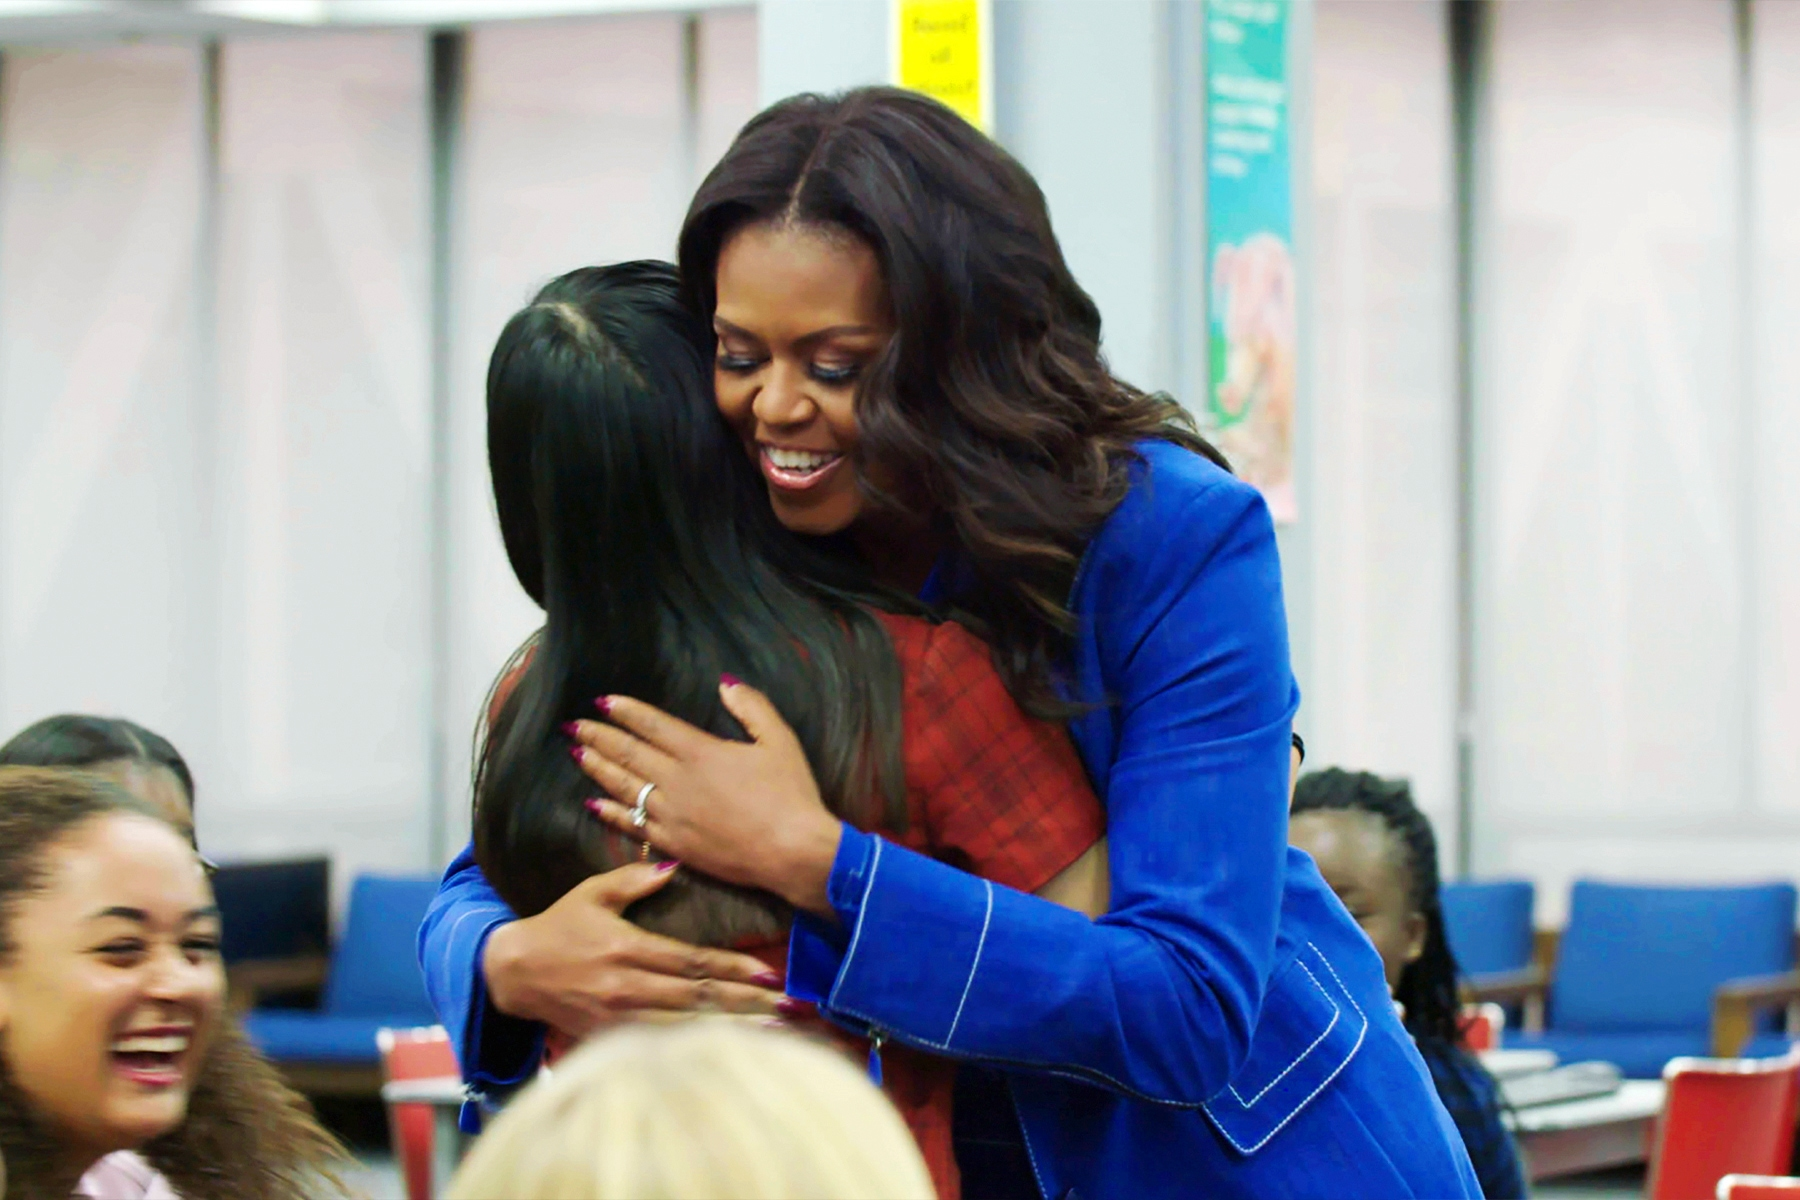 Michelle Obama in Becoming